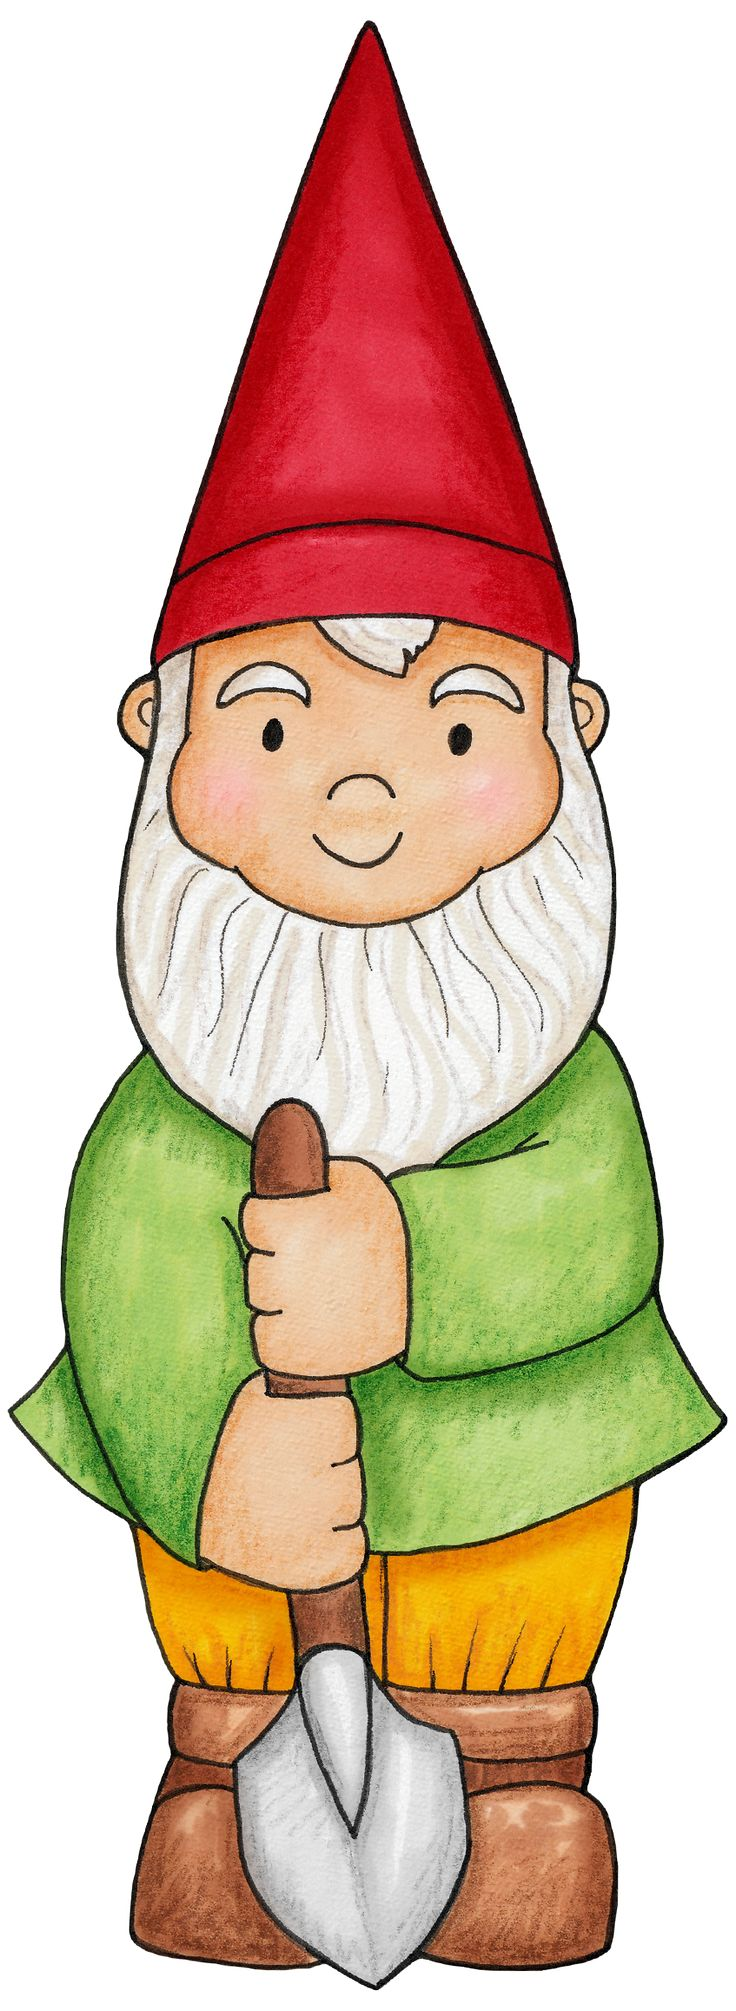 Little boy gnome for a woodlands party